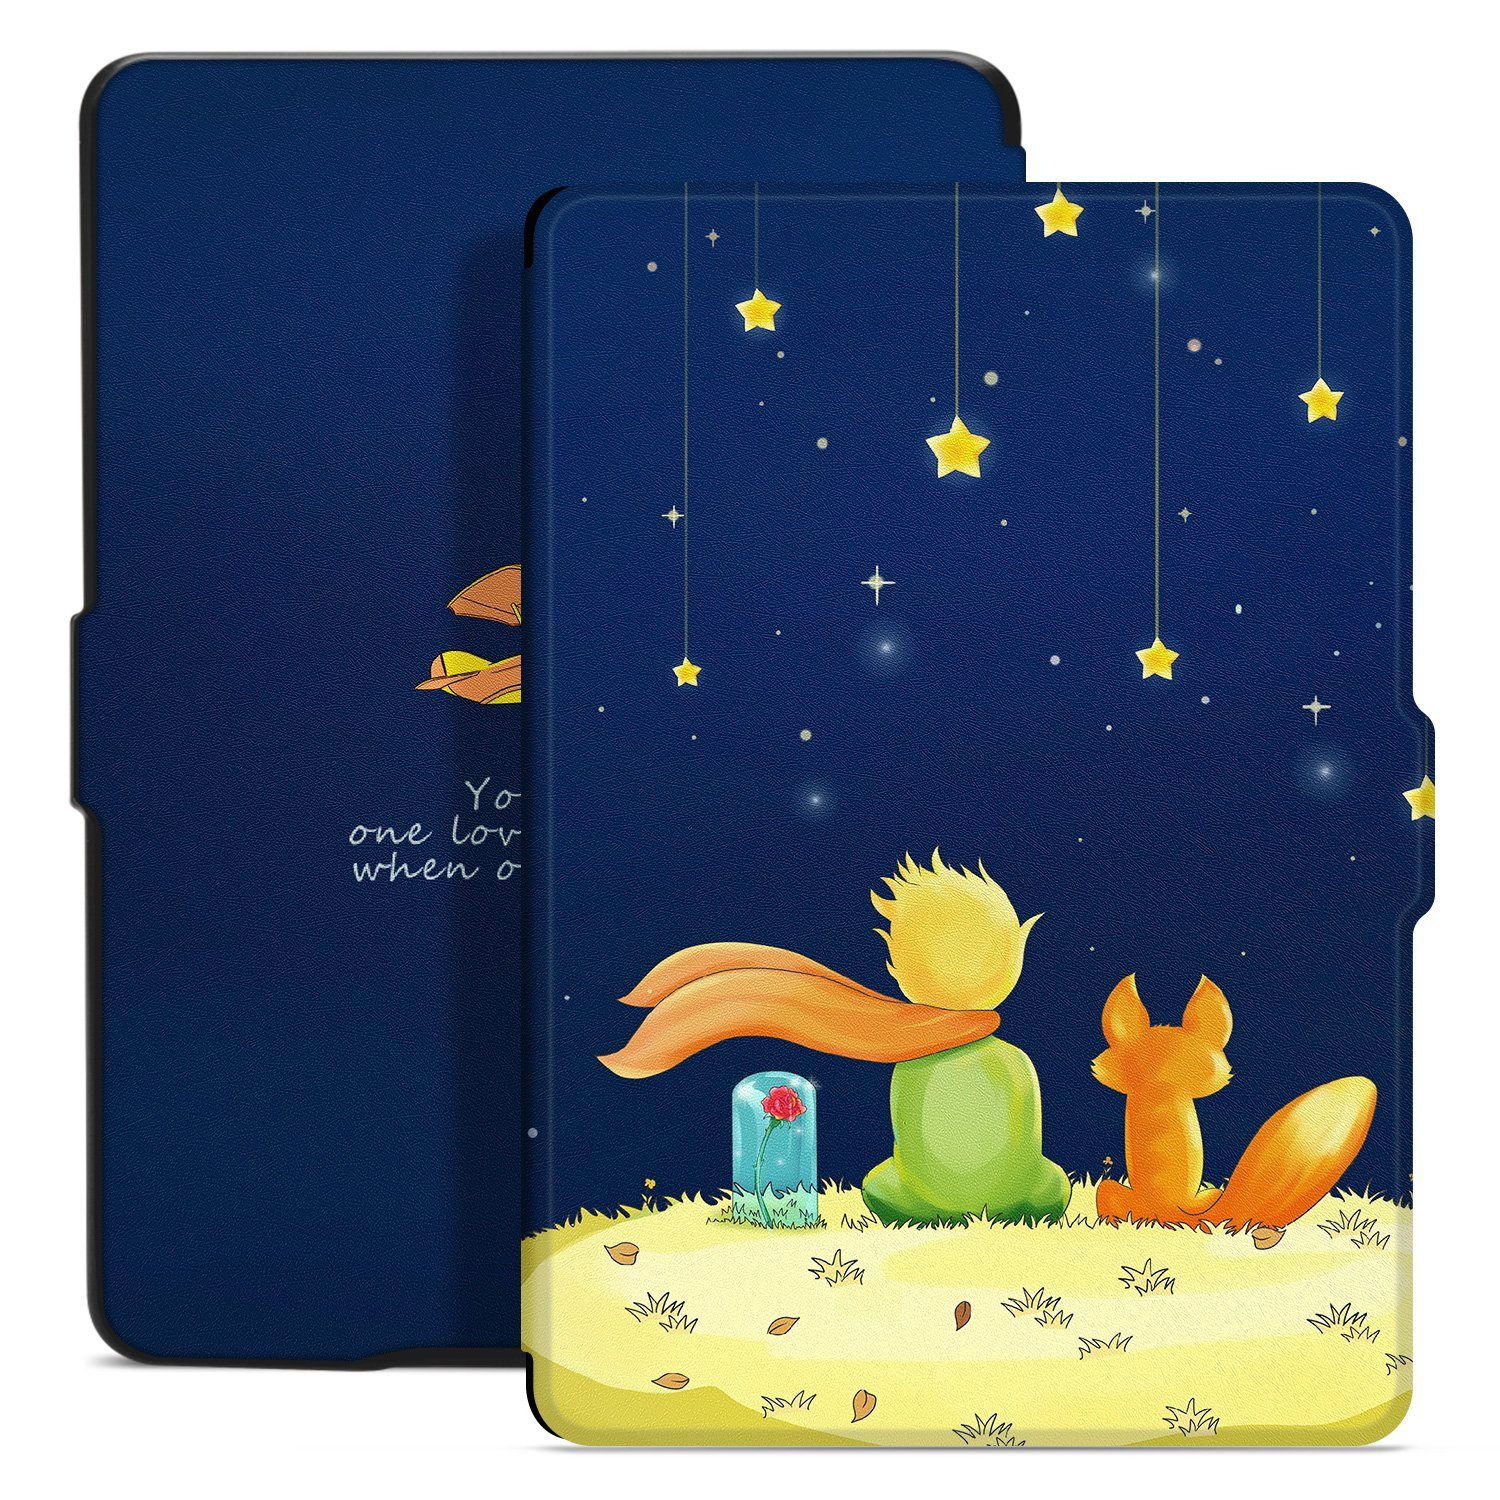 Ayotu Colorful Case for Kindle Paperwhite Thinnest and Lightest PU Leather Smart Cover, Auto Wake/Sleep,Fits All 2012, 2013, 2015 and 2016 Versions Kindle Paperwhite 300 PPI,K5-09 The Boy and Fox by Ayotu